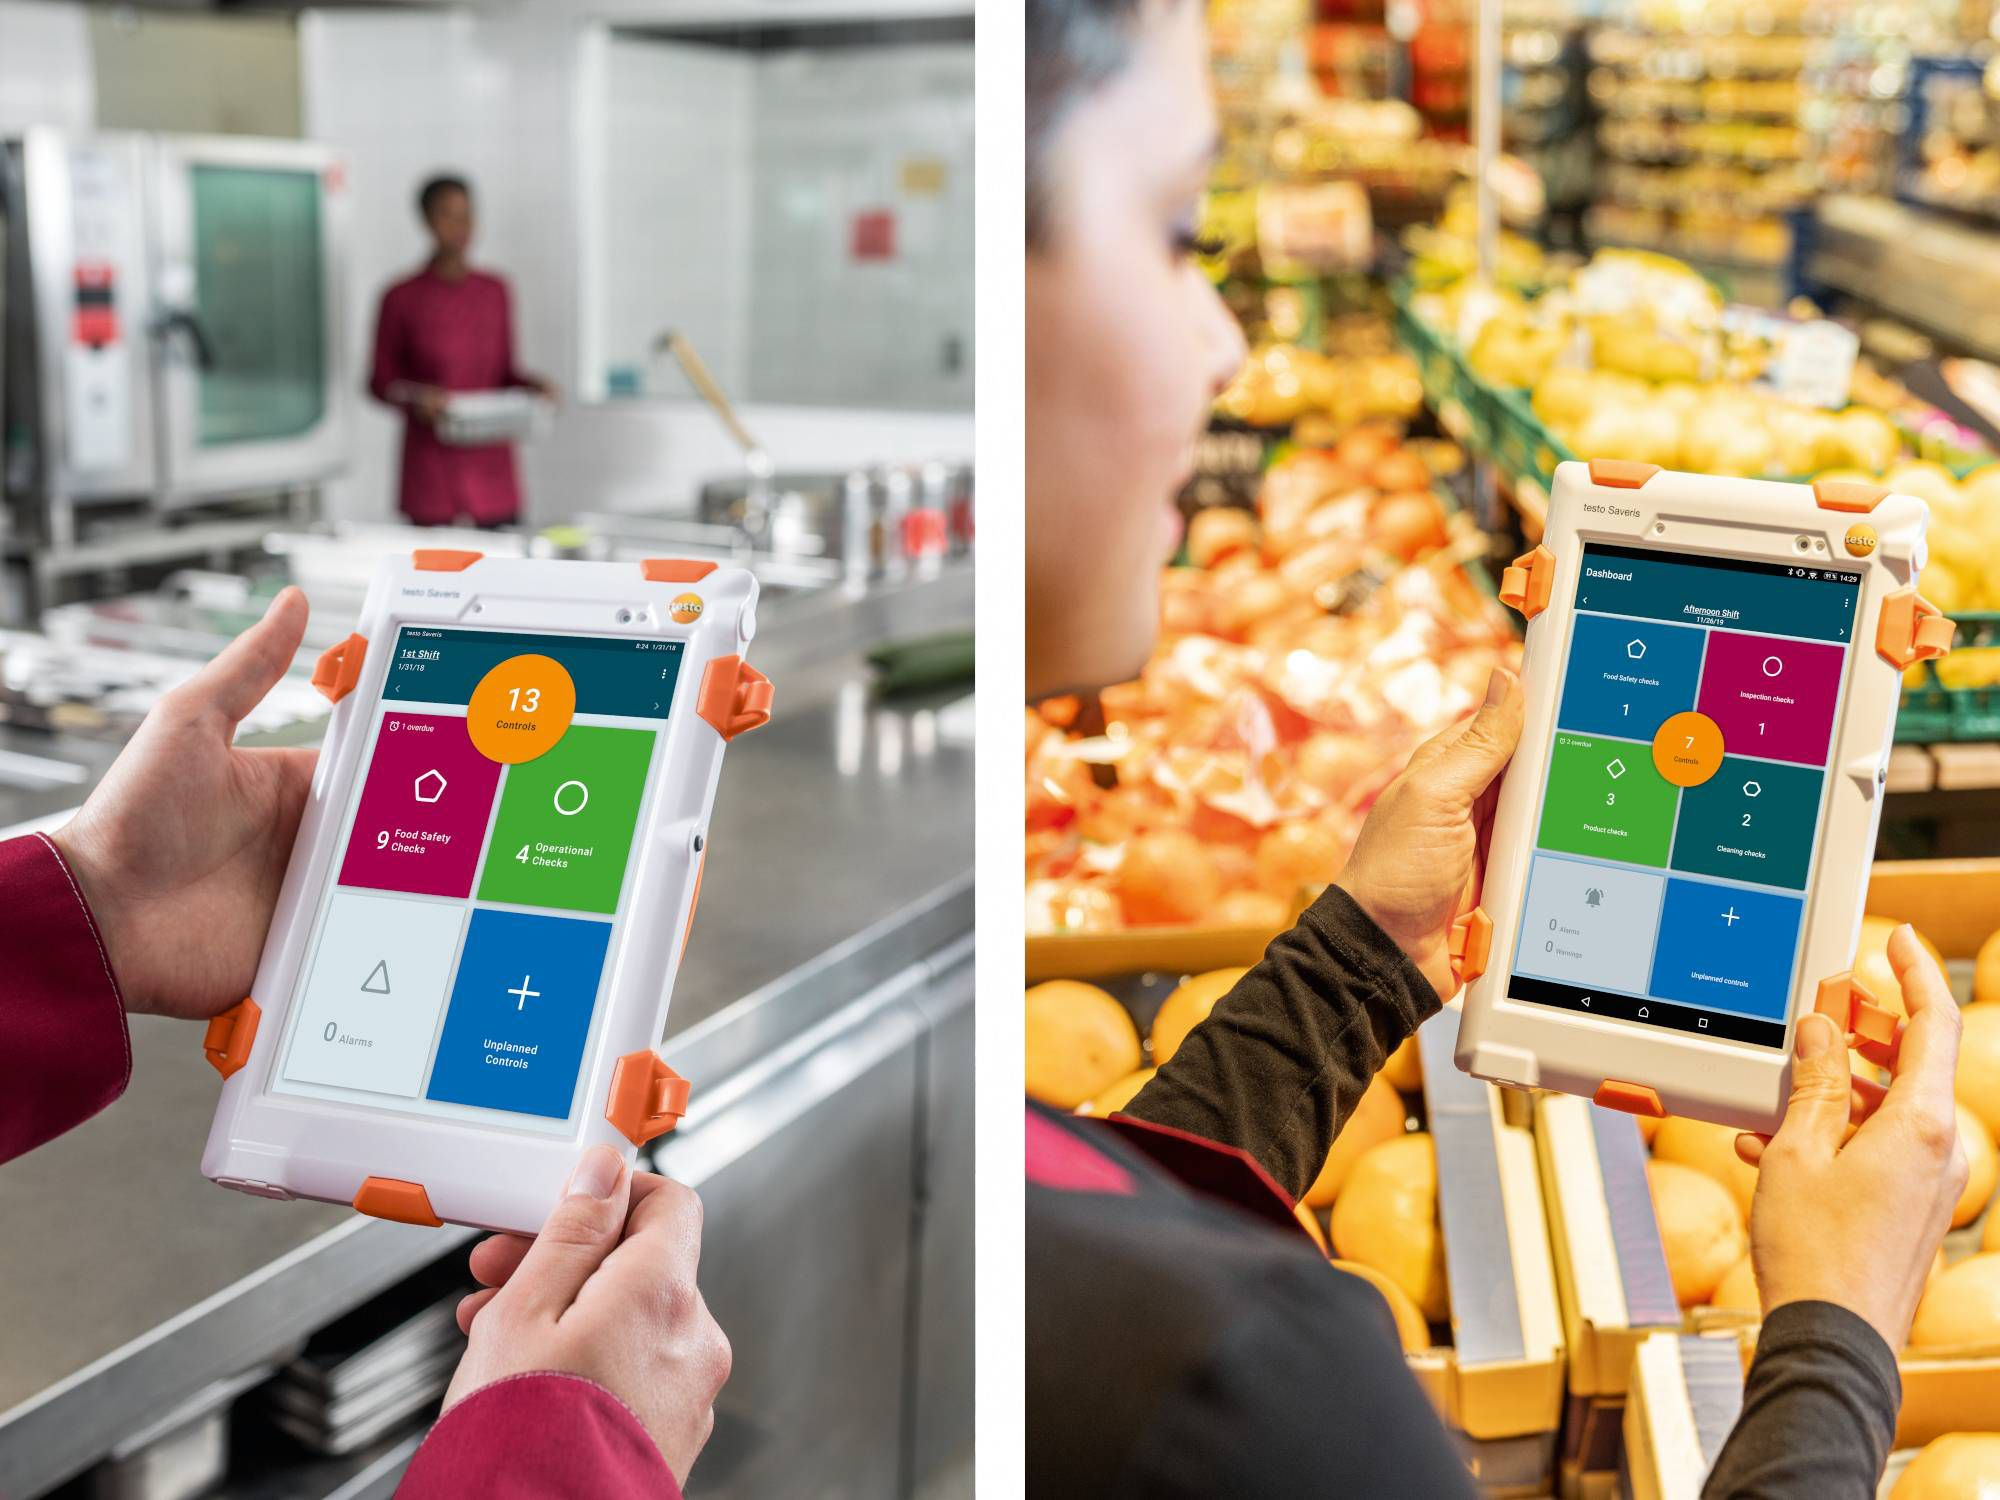 Our digital food safety systems